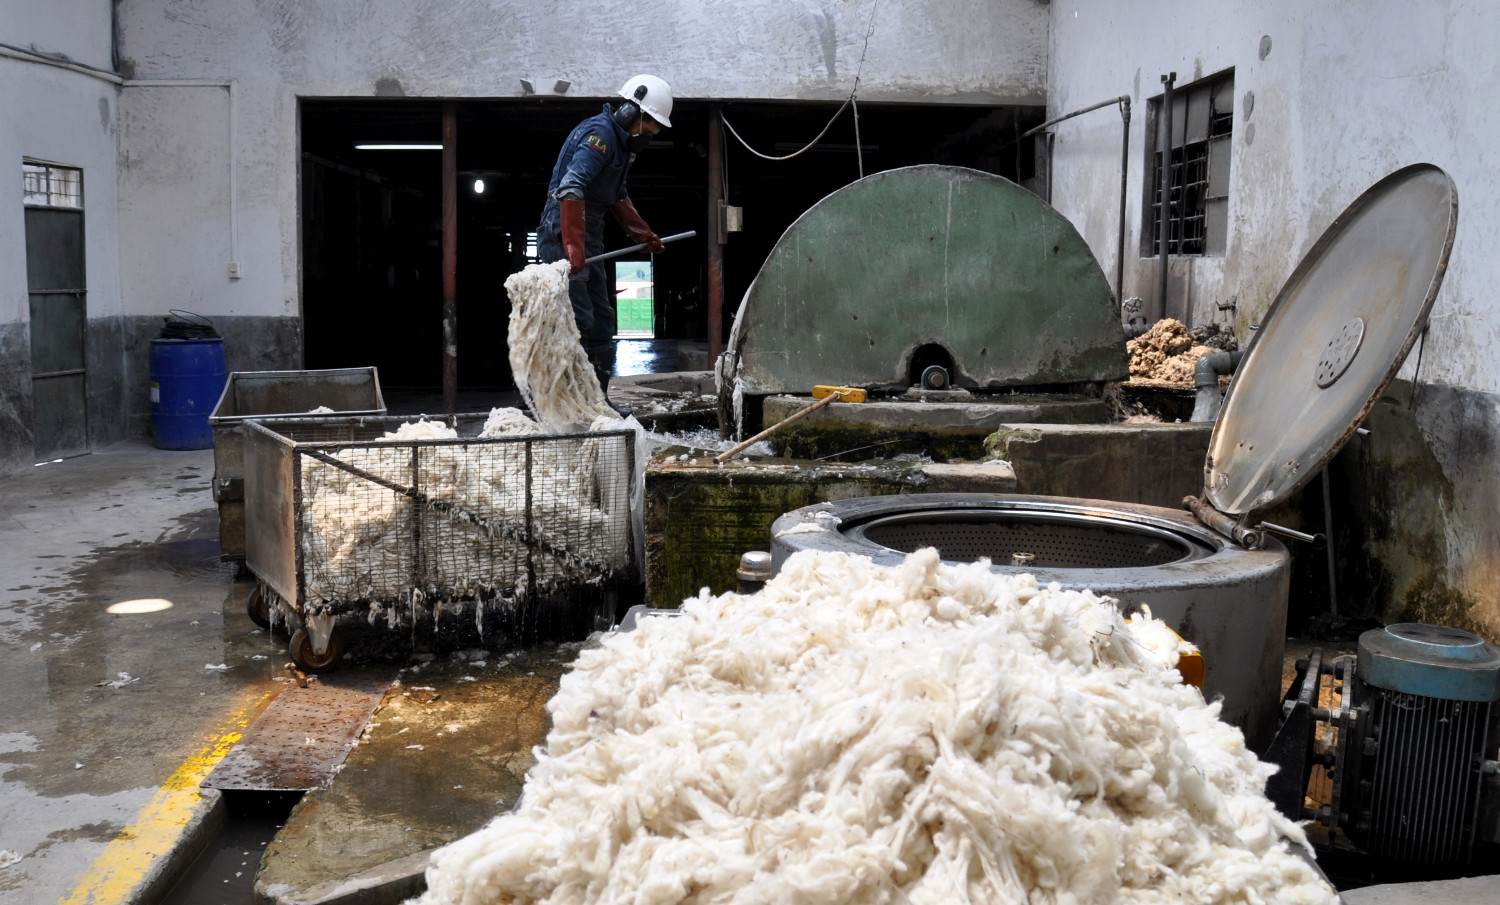 Schafwollverarbeitung in Salinas | Working sheep's wool in Salinas